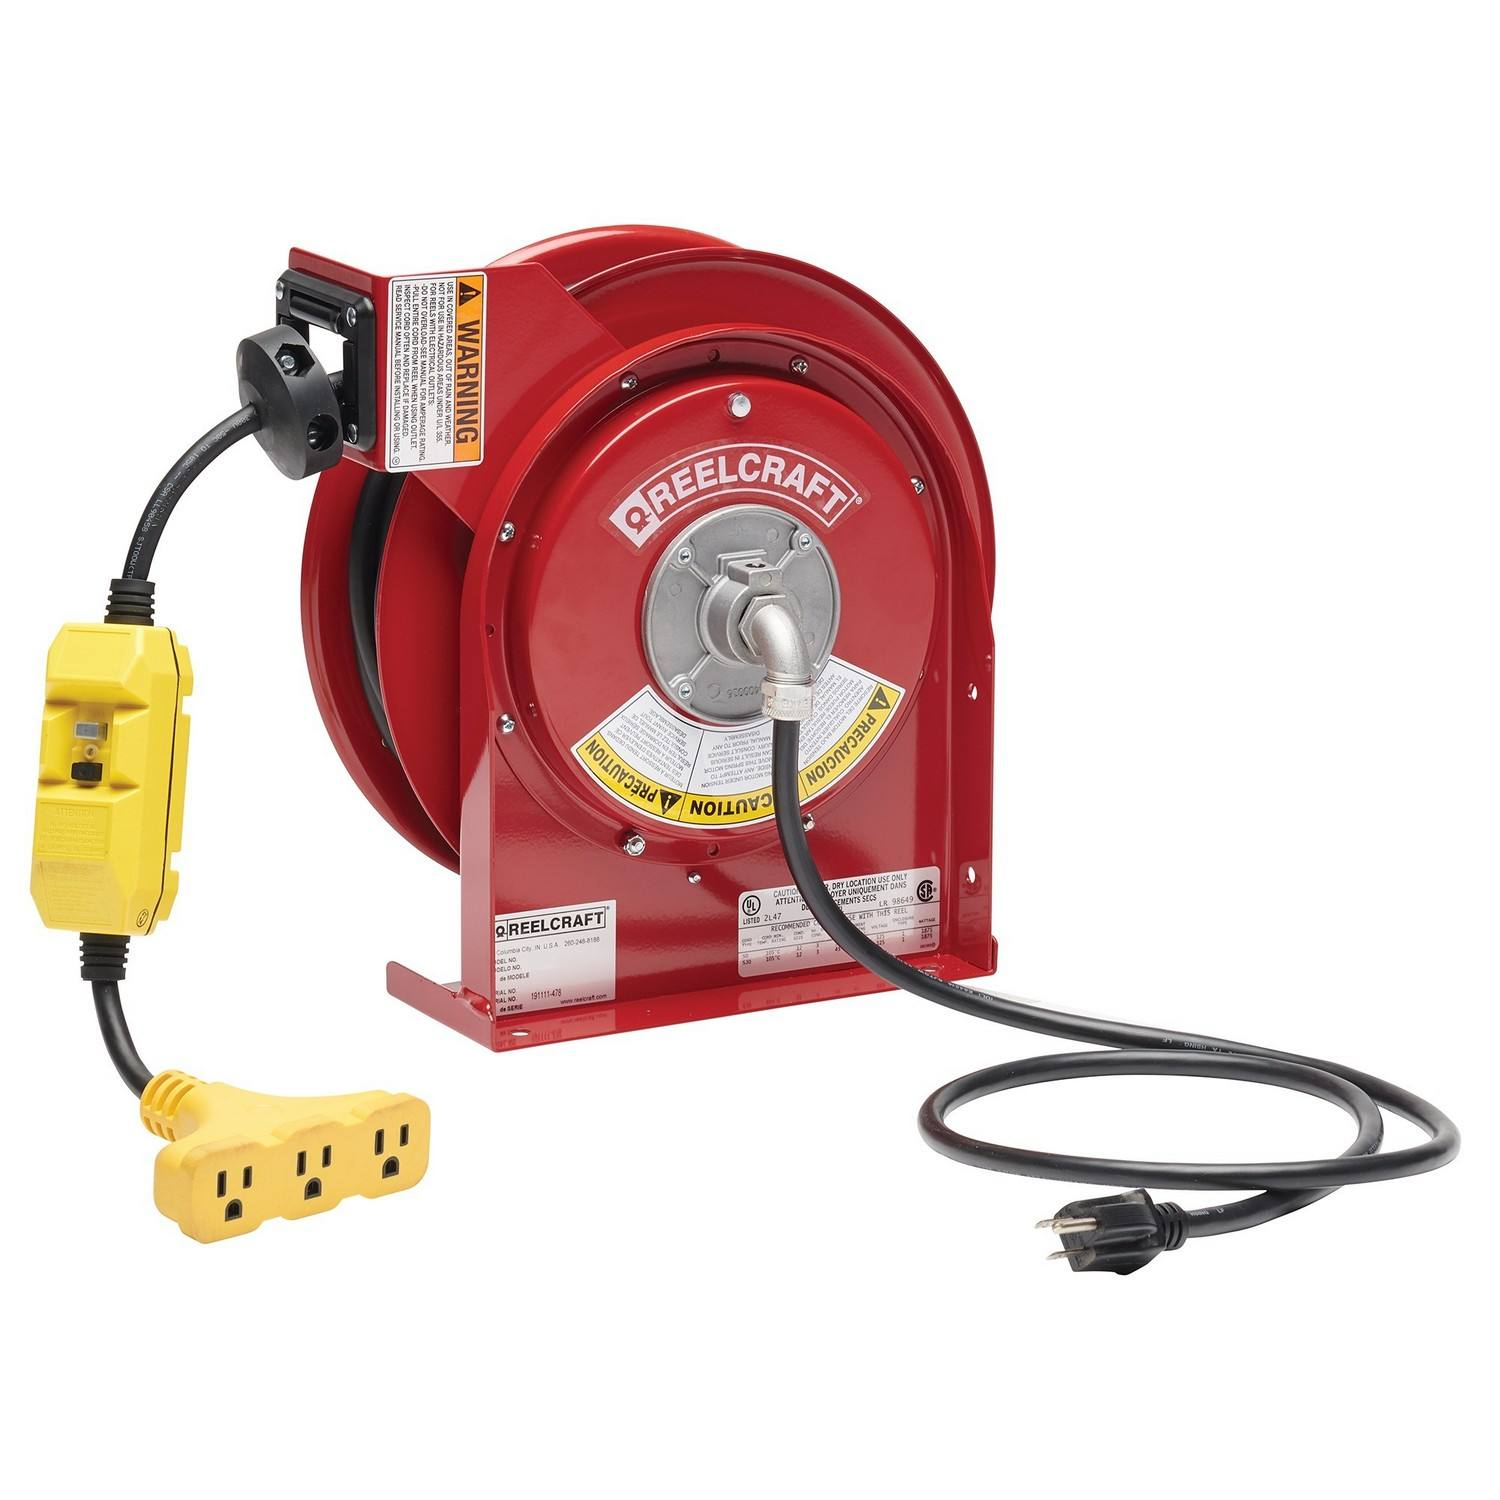 Heavy Duty Power Cord Reels